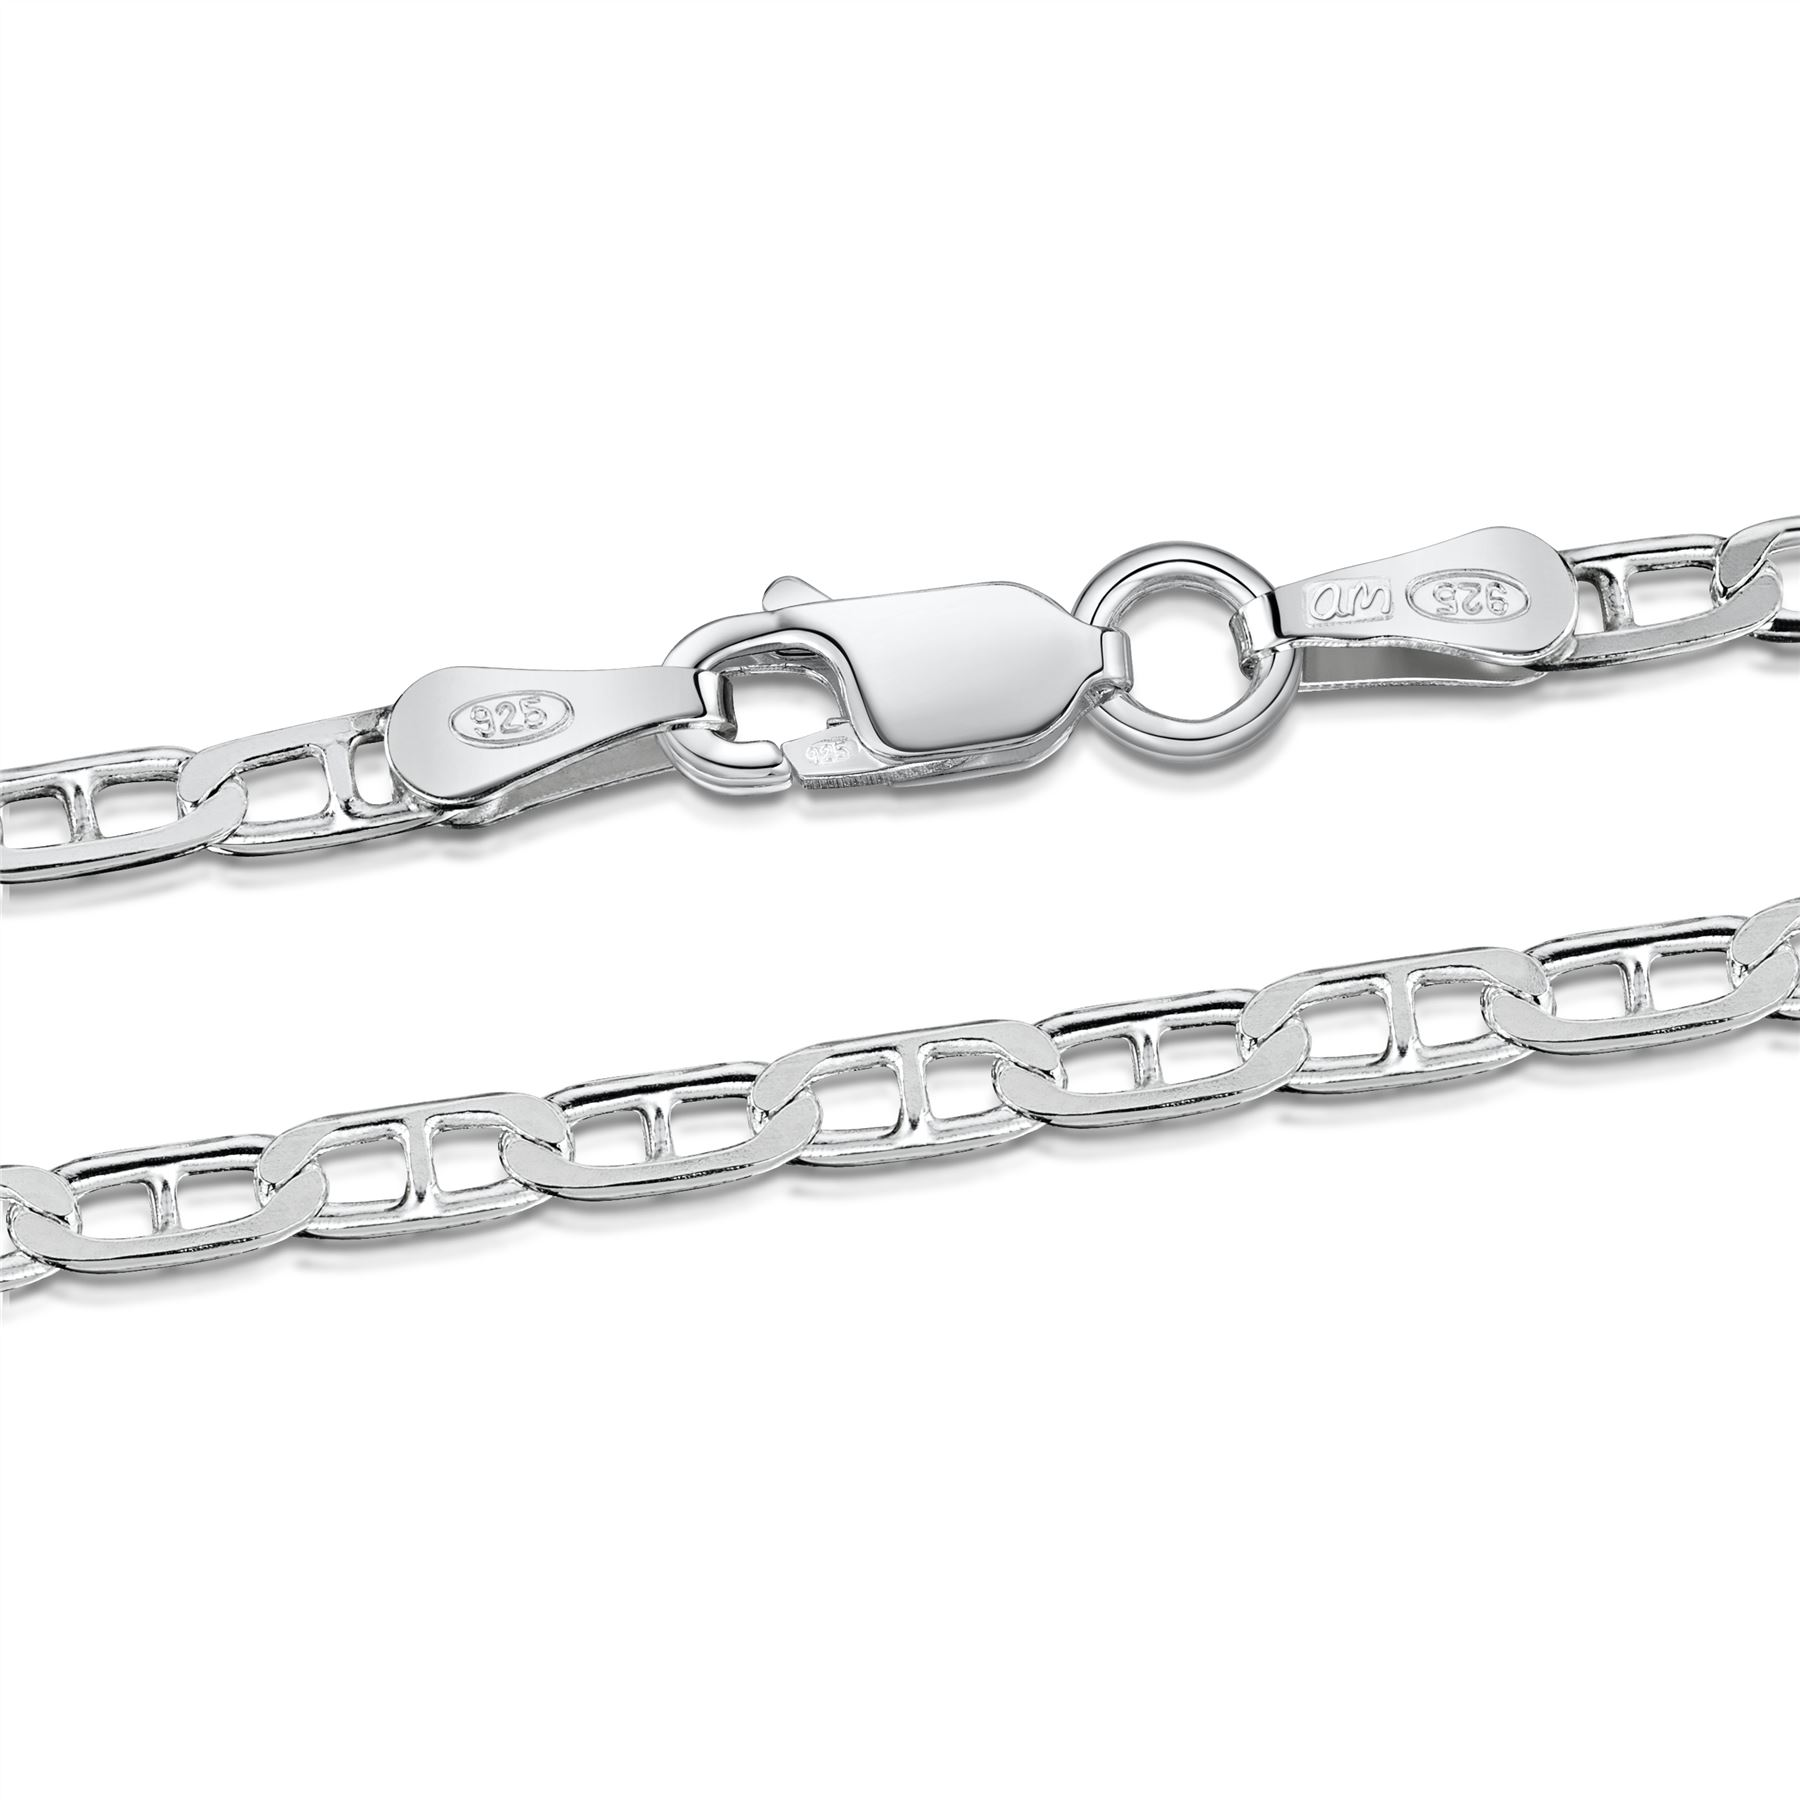 Amberta-Genuine-Real-925-Sterling-Silver-Bracelet-Bangle-Chain-Made-in-Italy thumbnail 33